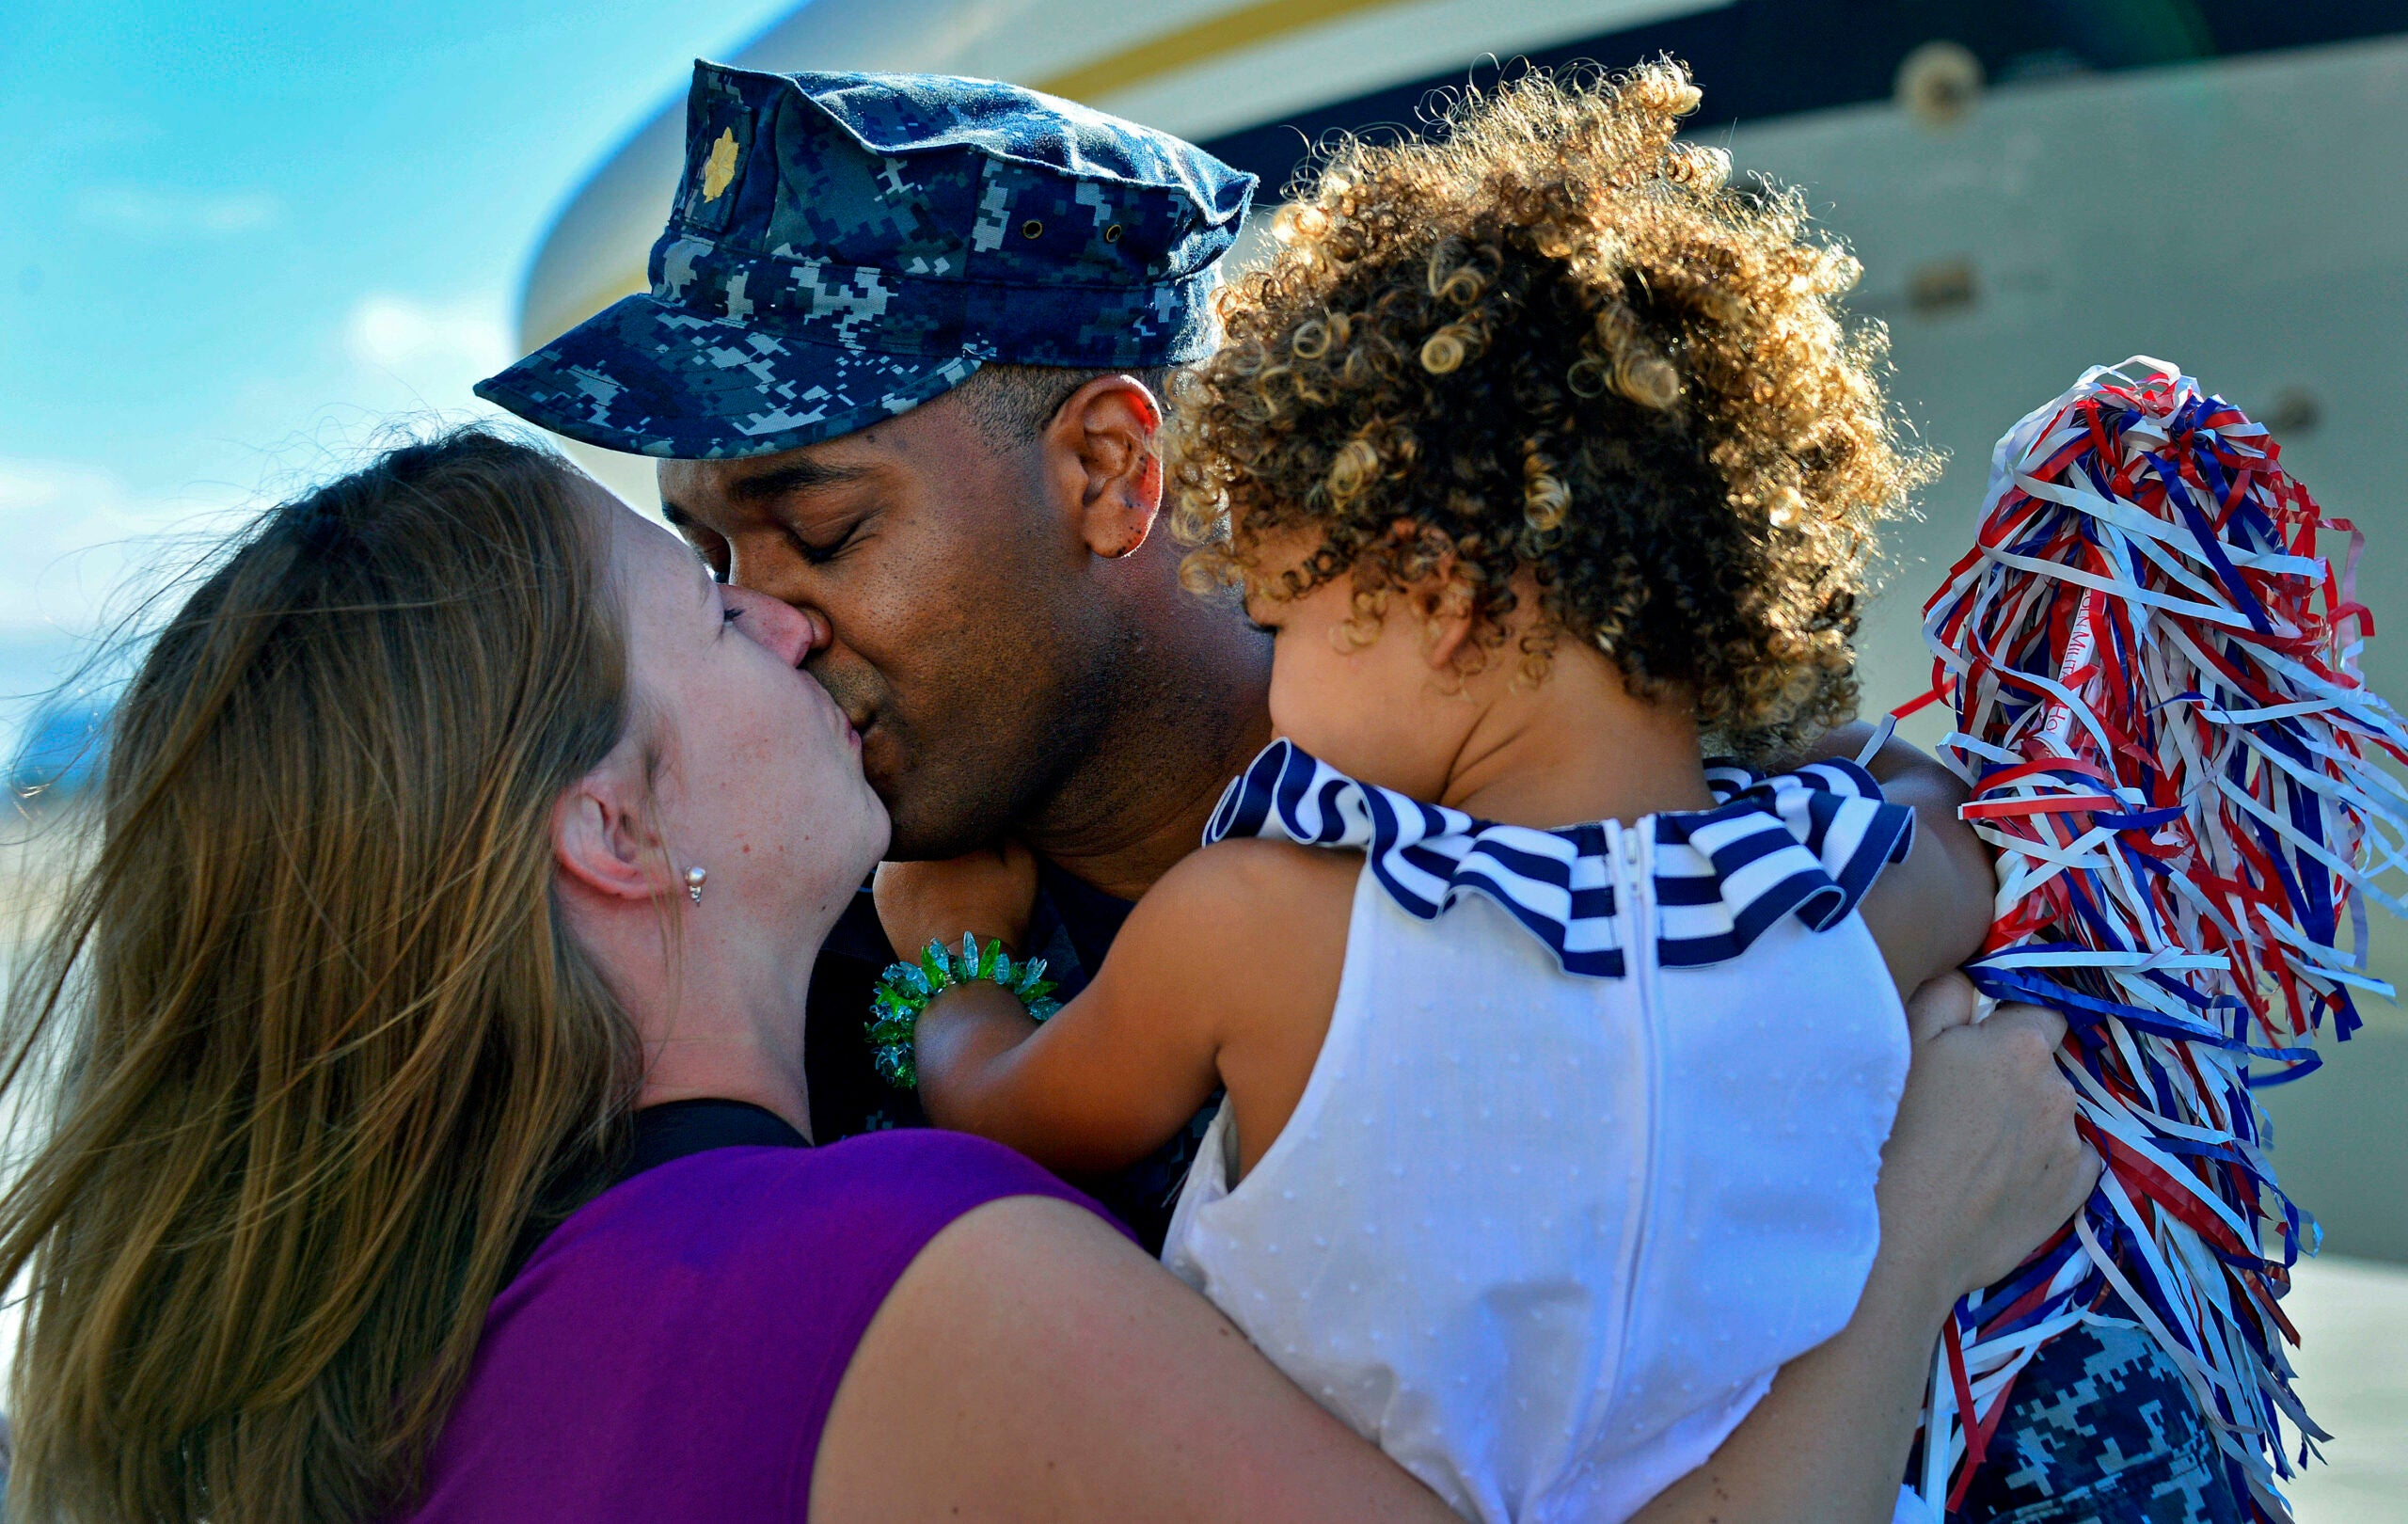 Warm Your Heart With These 18 Photos of Homecoming Kisses